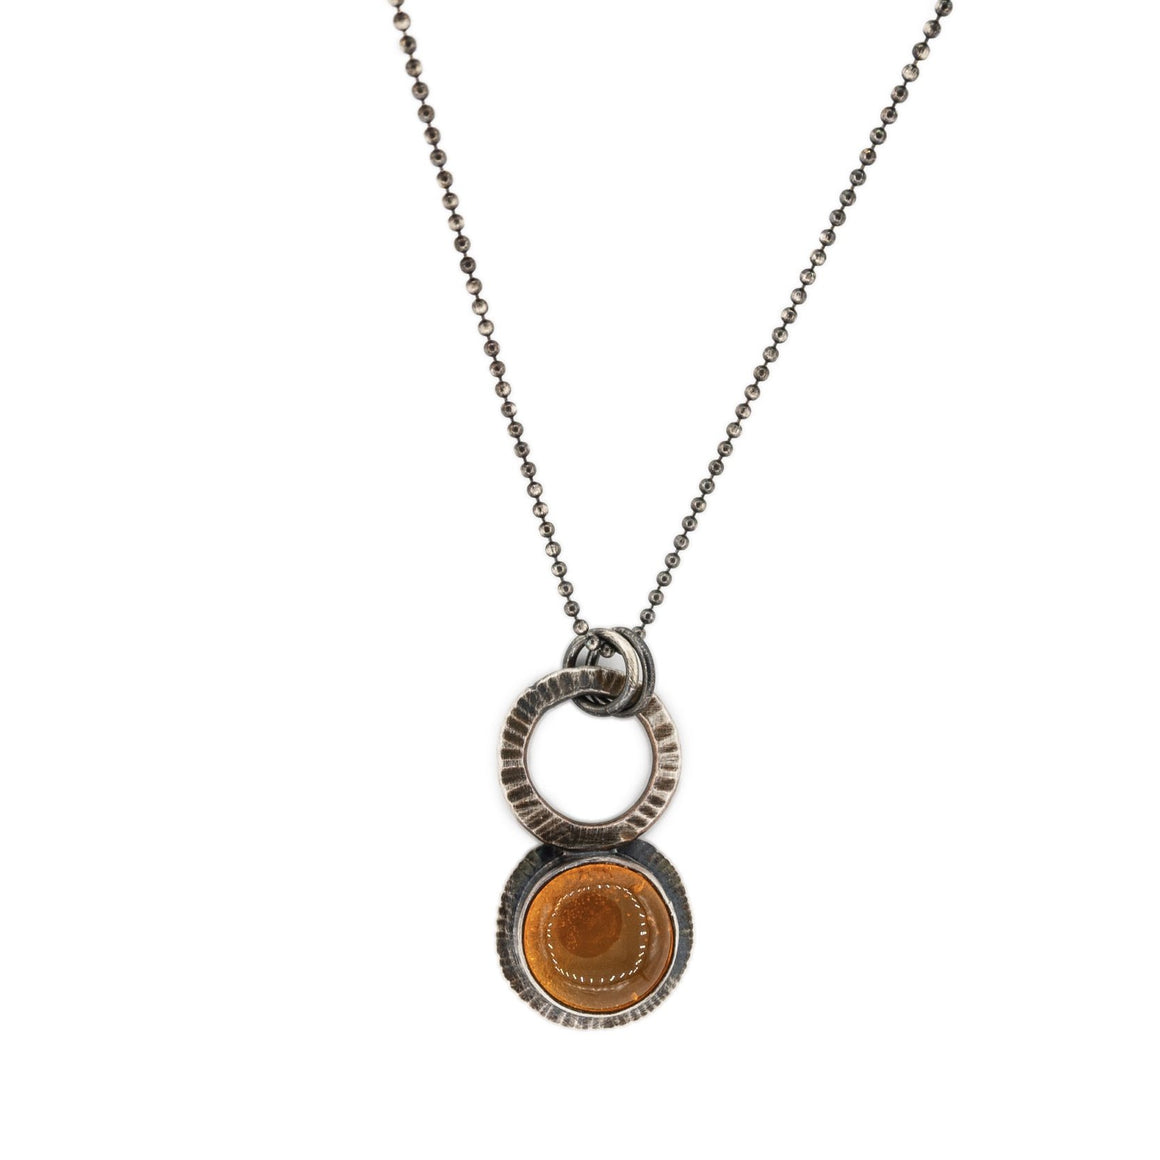 Oregon fire opal in oxidized silver focus necklace simple pendant minimalist style by Original Sin Jewelry